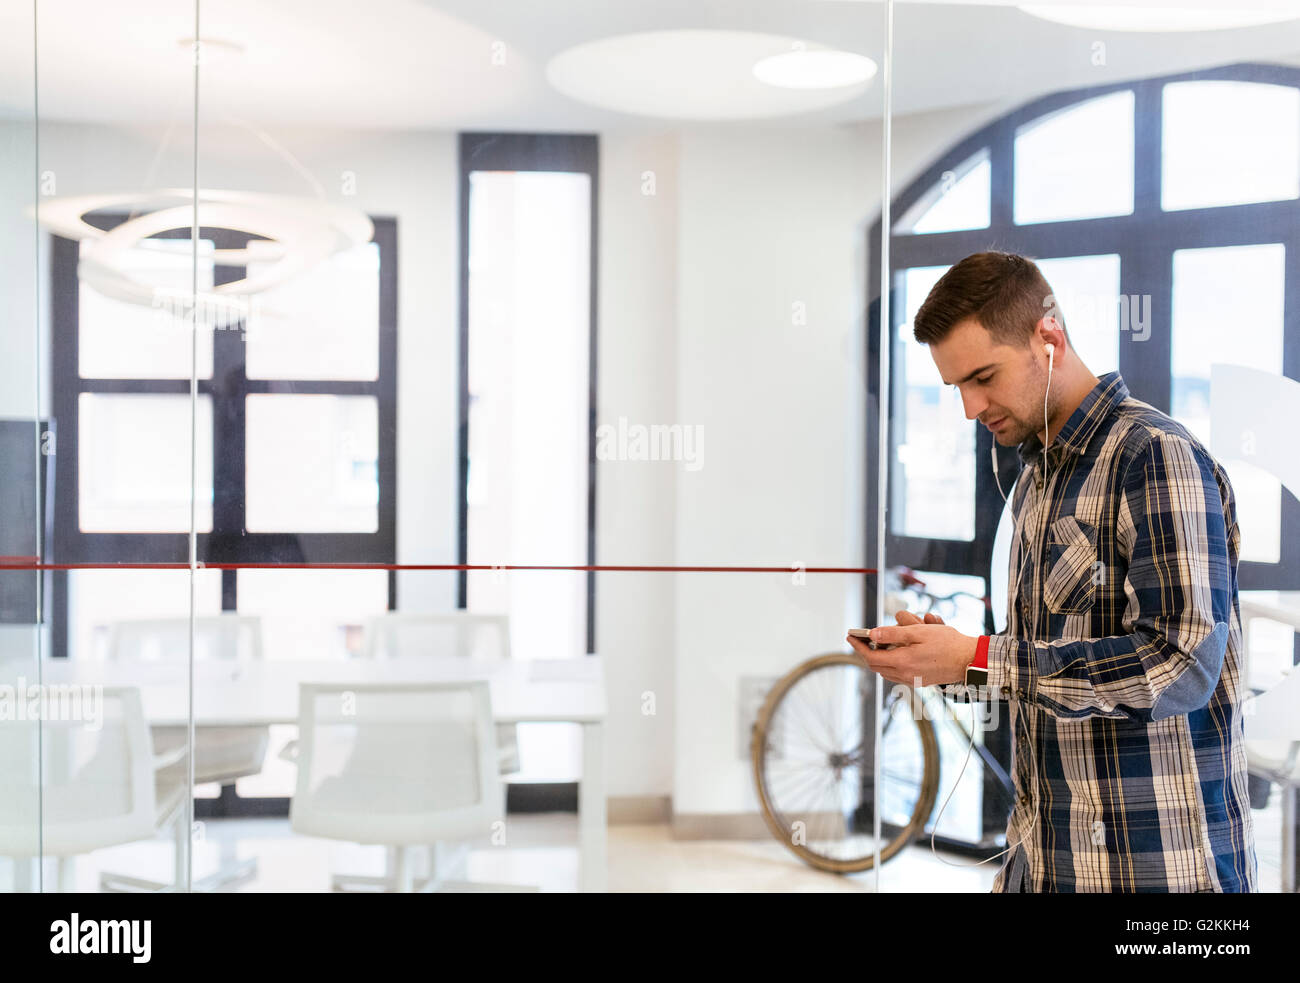 Young man wearing earbuds in office - Stock Image